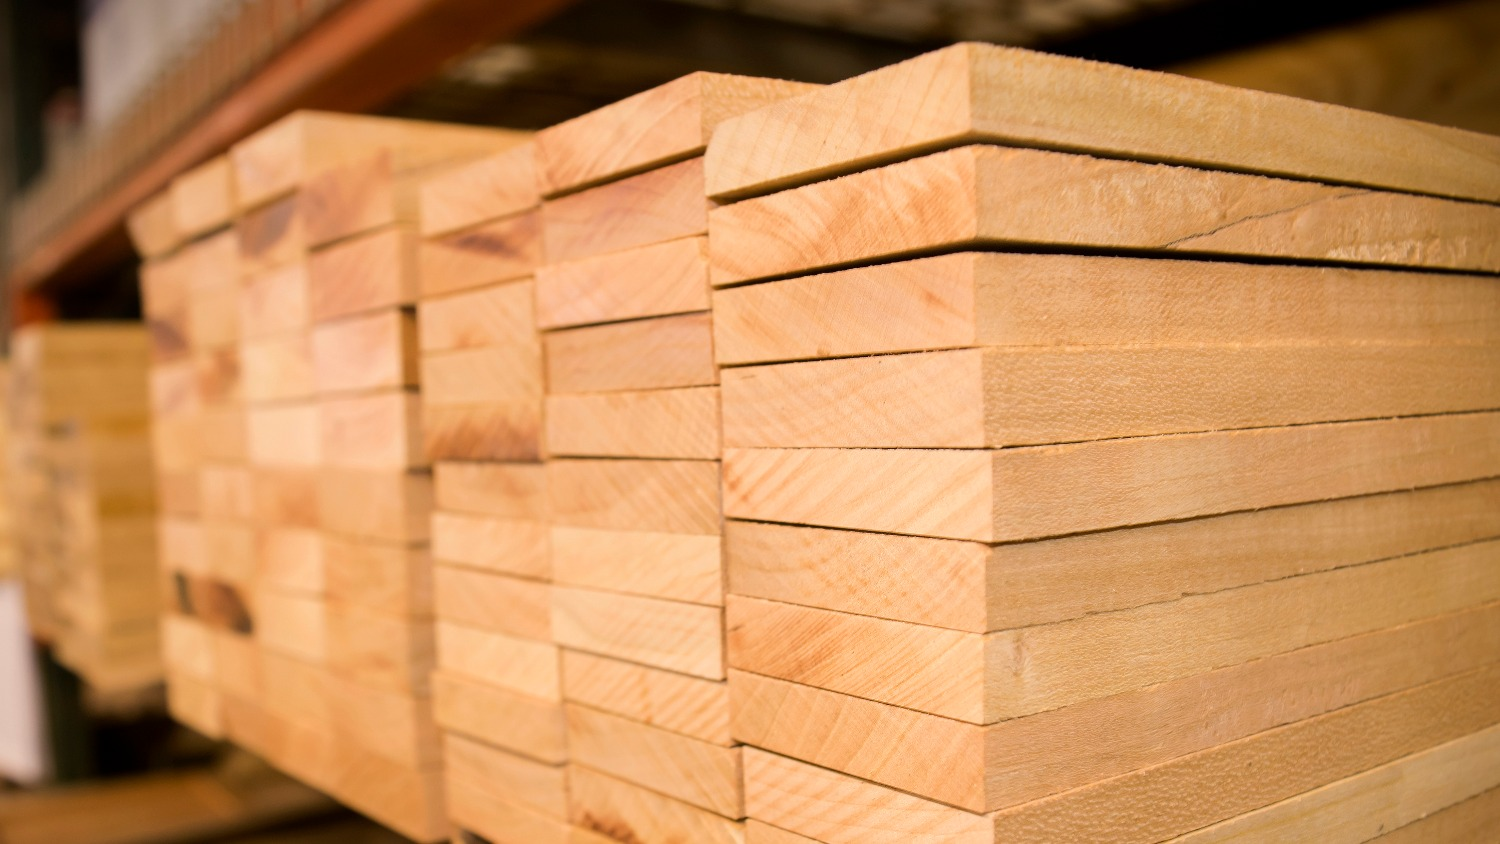 Wooden Blocks - Ask an Expert: Why Is There a Lumber Shortage? - College of Natural Resources News NC State University